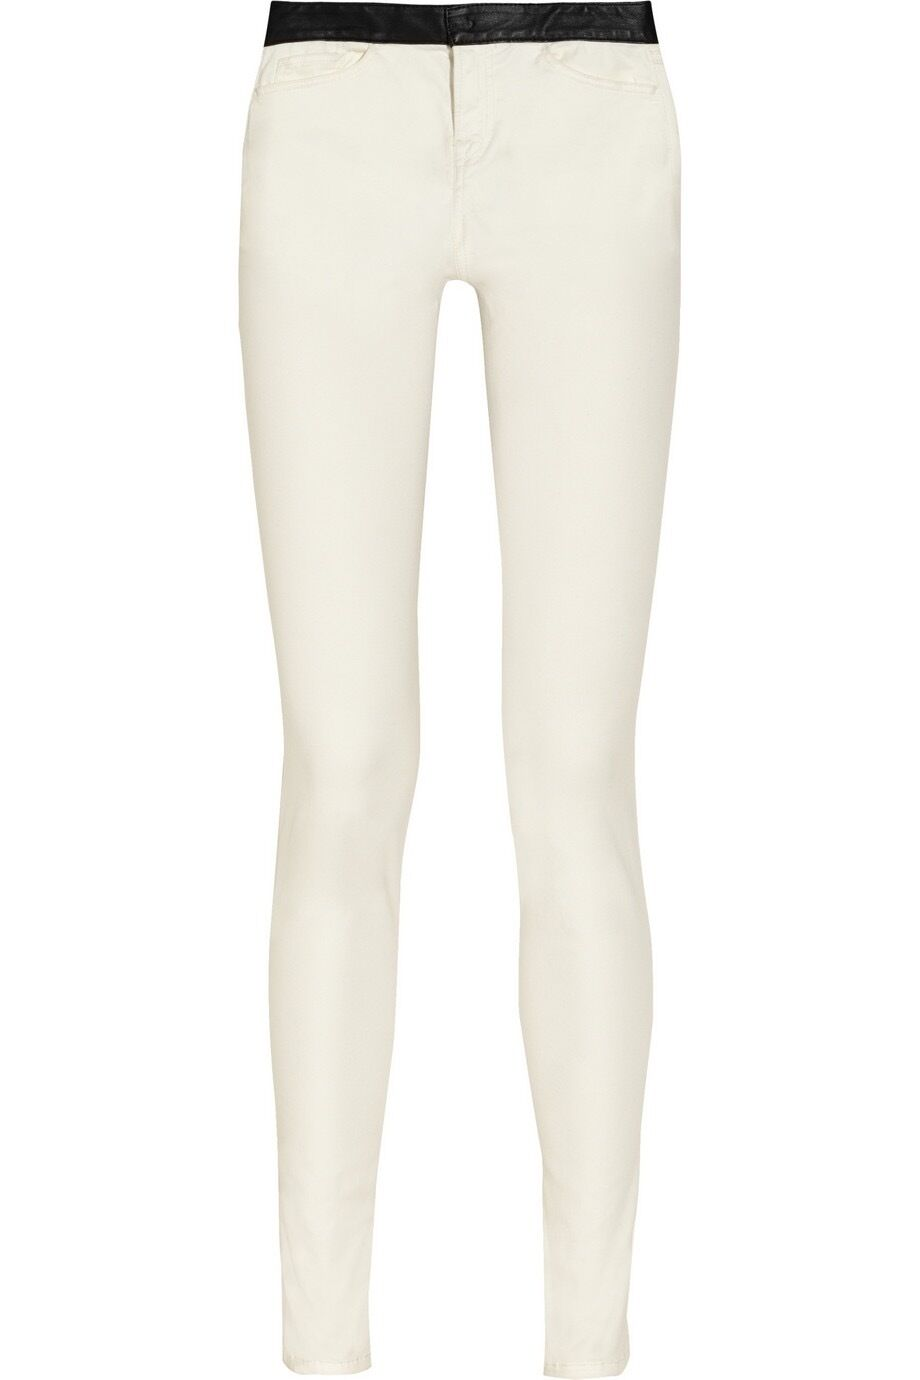 425 R13 Hose leather-trimmed skinny Jeans Denim in white size 27 NWT